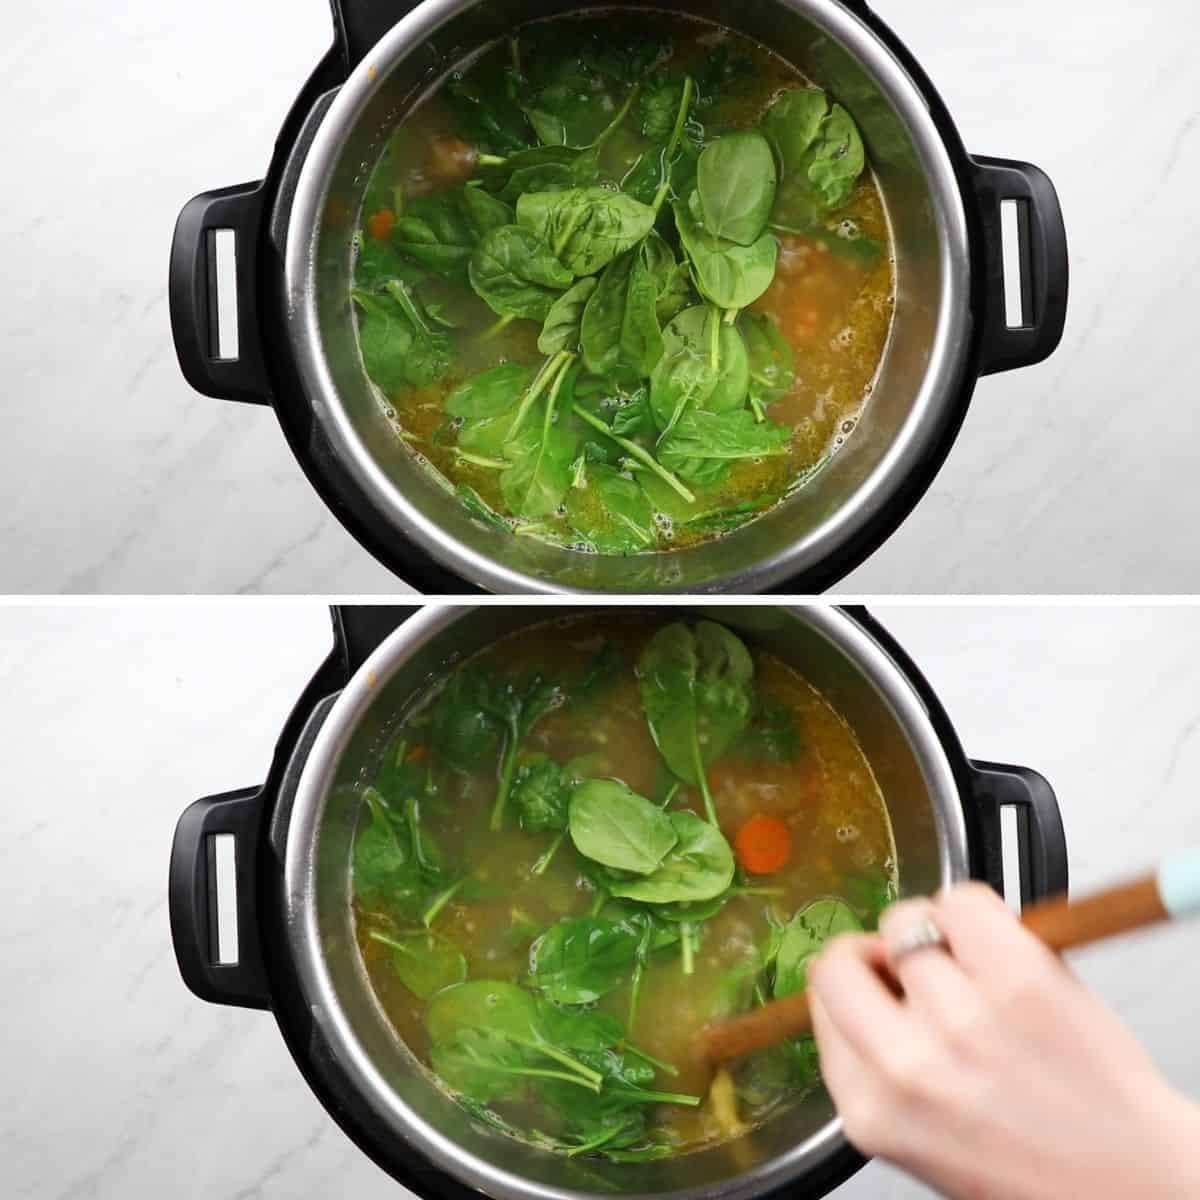 Process photos of adding spinach to soup in a pressure cooker.